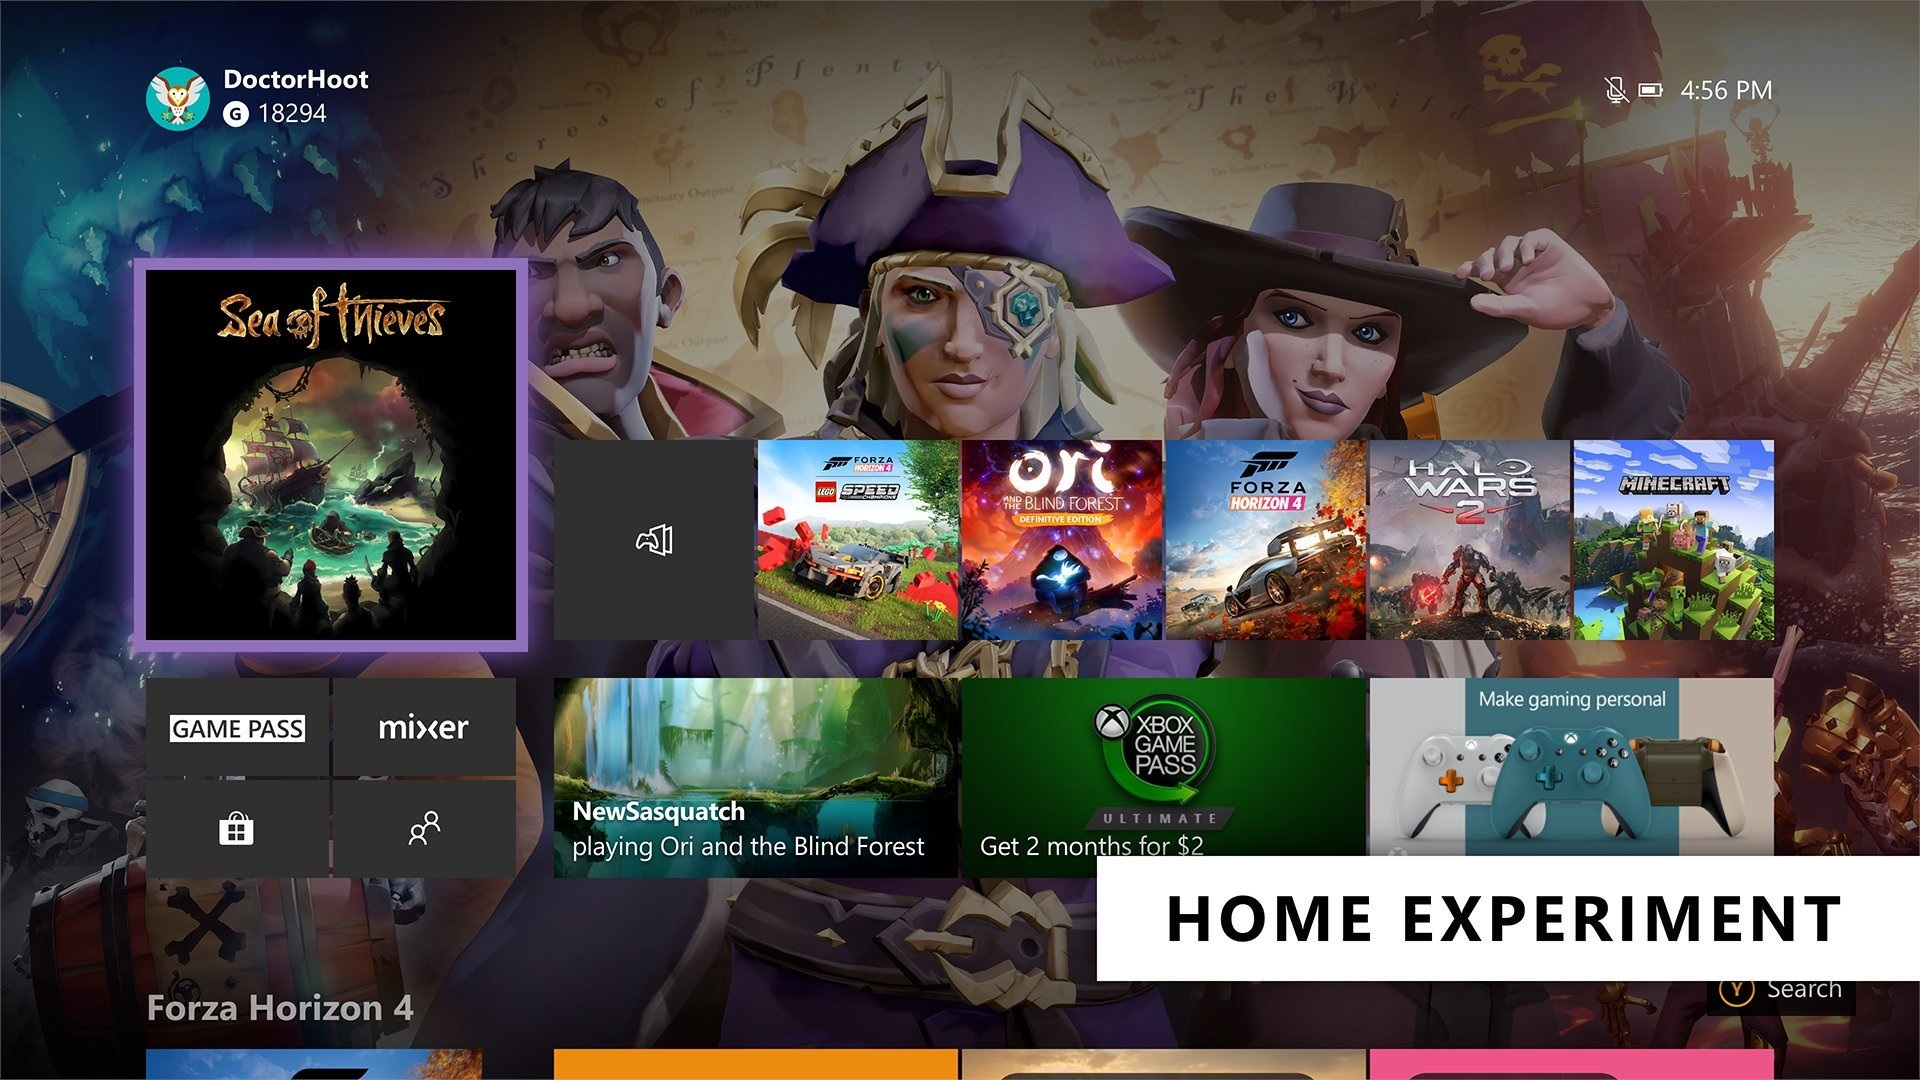 Xbox Insiders Get Ready for the Next Xbox One Home Experiments  Xbox home2.jpg